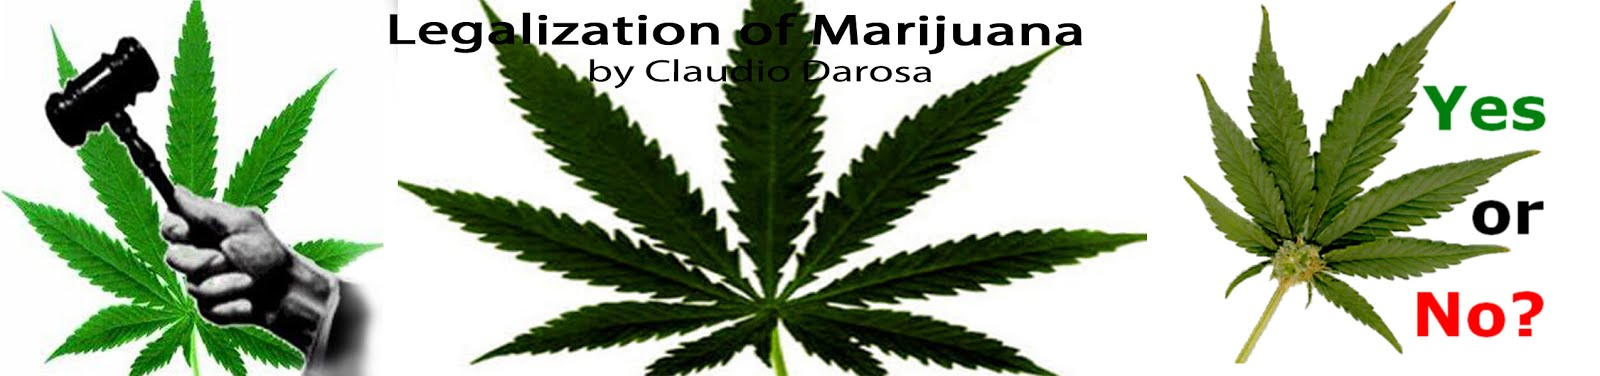 an argument in favor of marijuana legalization I am not asking why people want marijuana legal, i am asking what arguments people make that legalizing marijuana would be beneficial to a society.